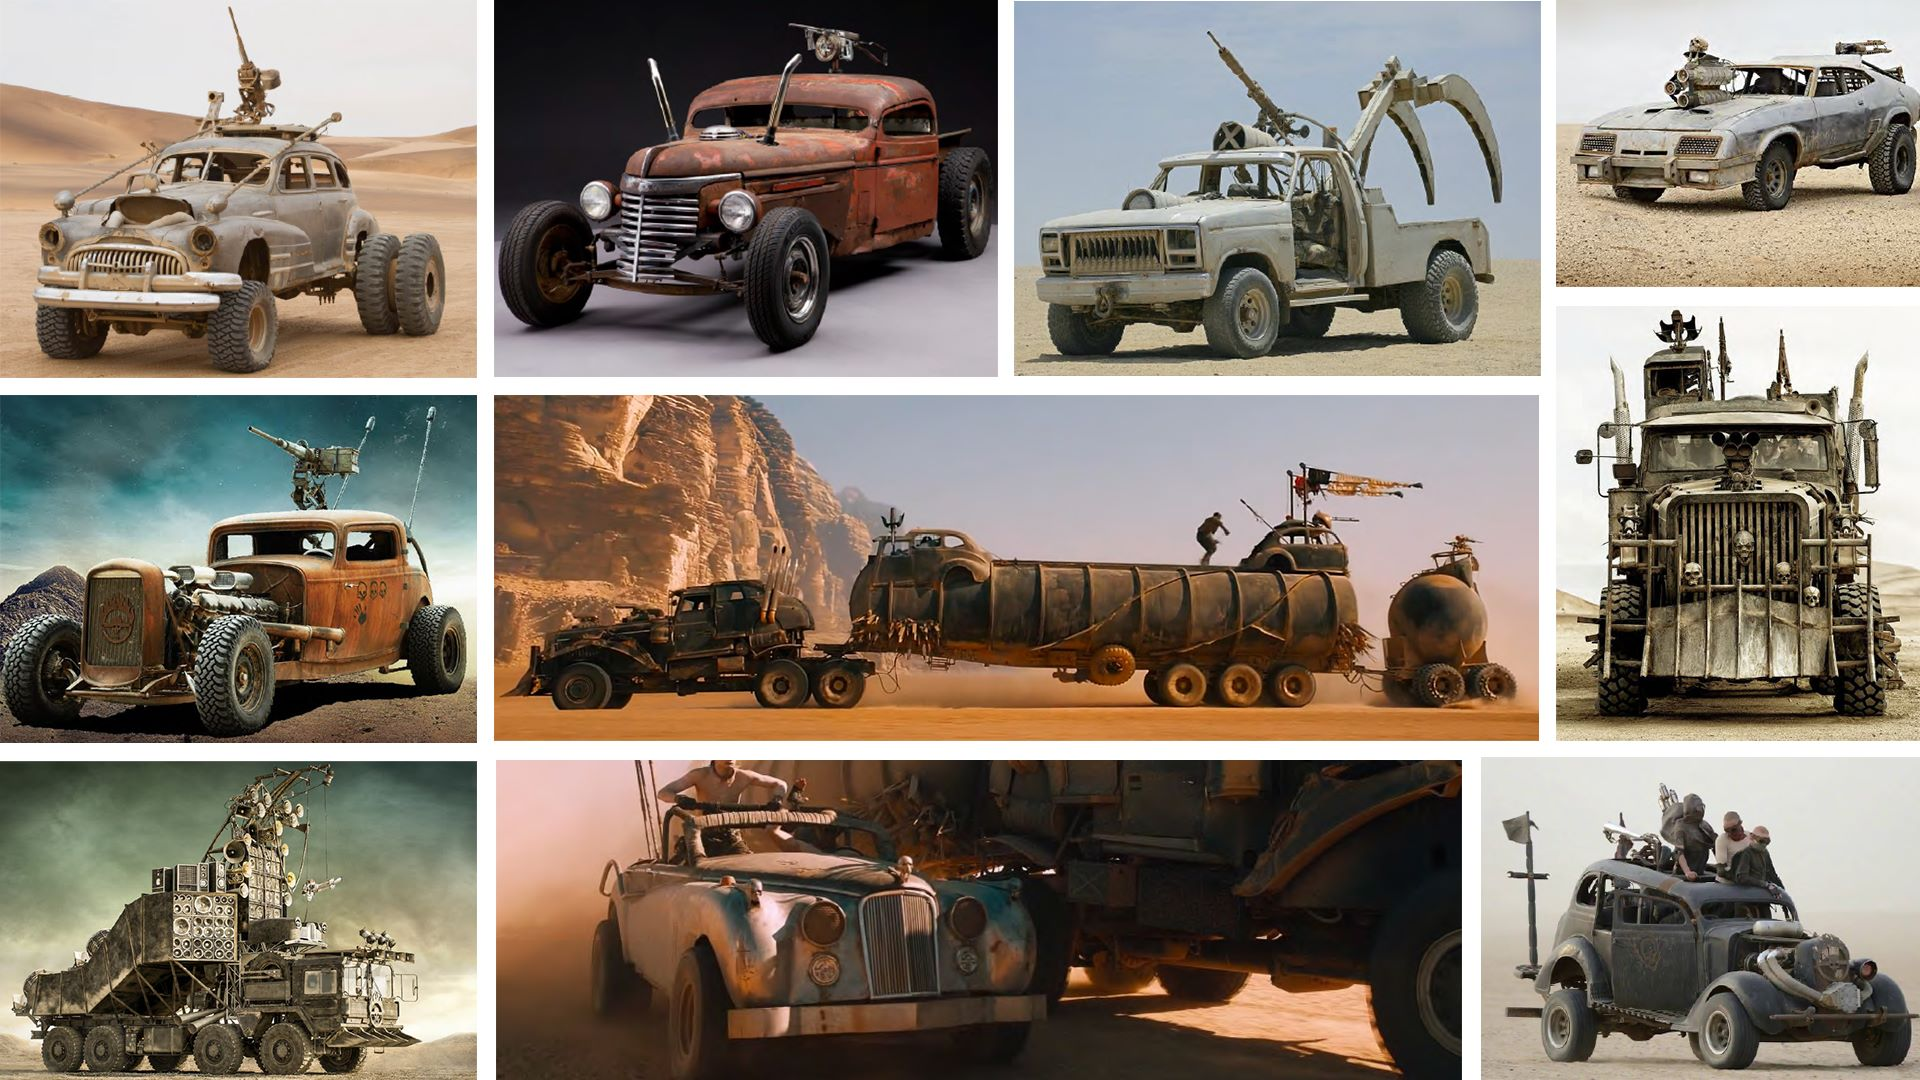 Mad-Max-Fury-Road-cars-for-sale-1